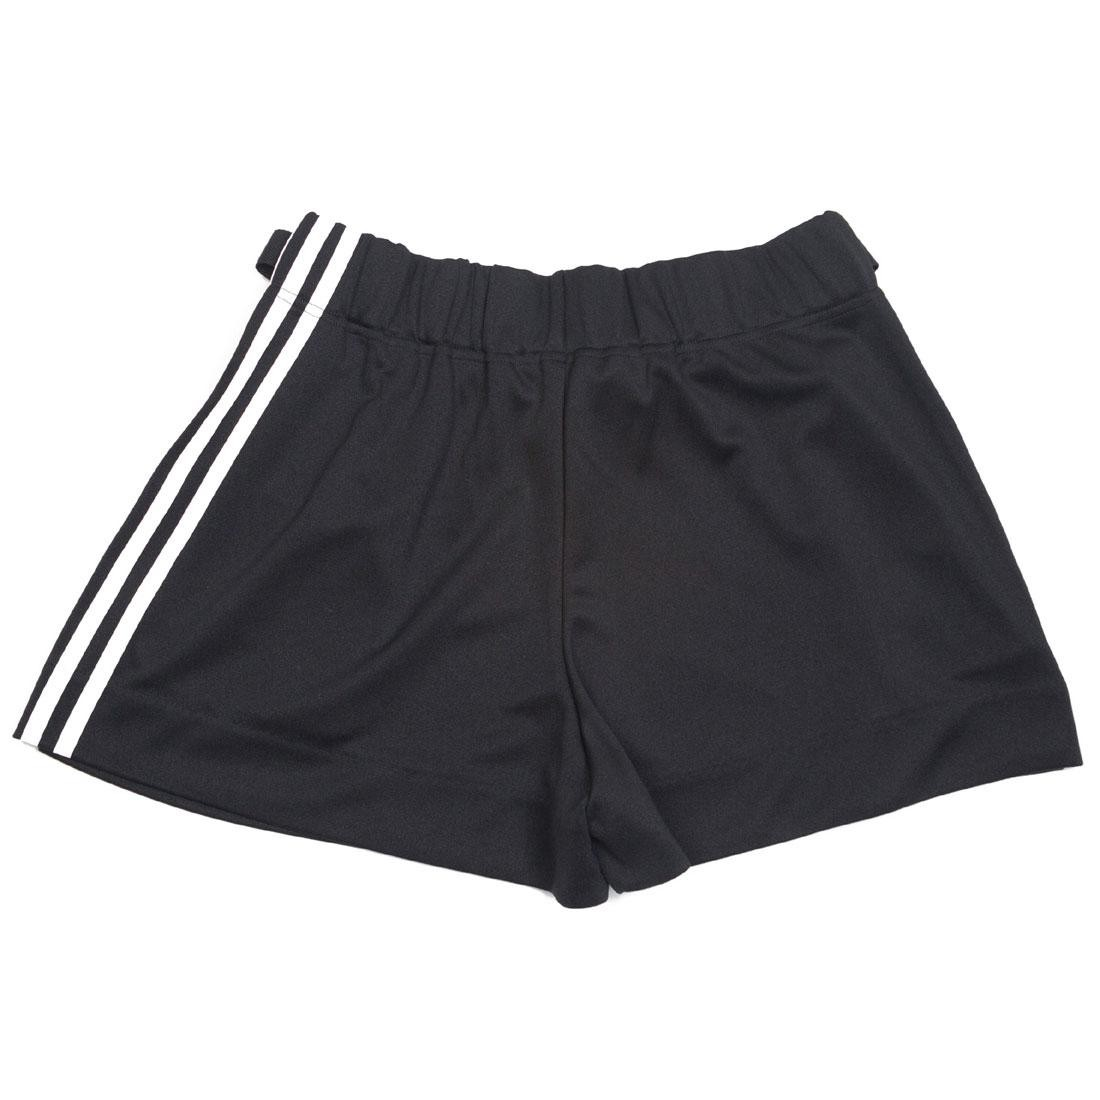 Adidas Y-3 Women 3 Stripes Track Shorts (black)